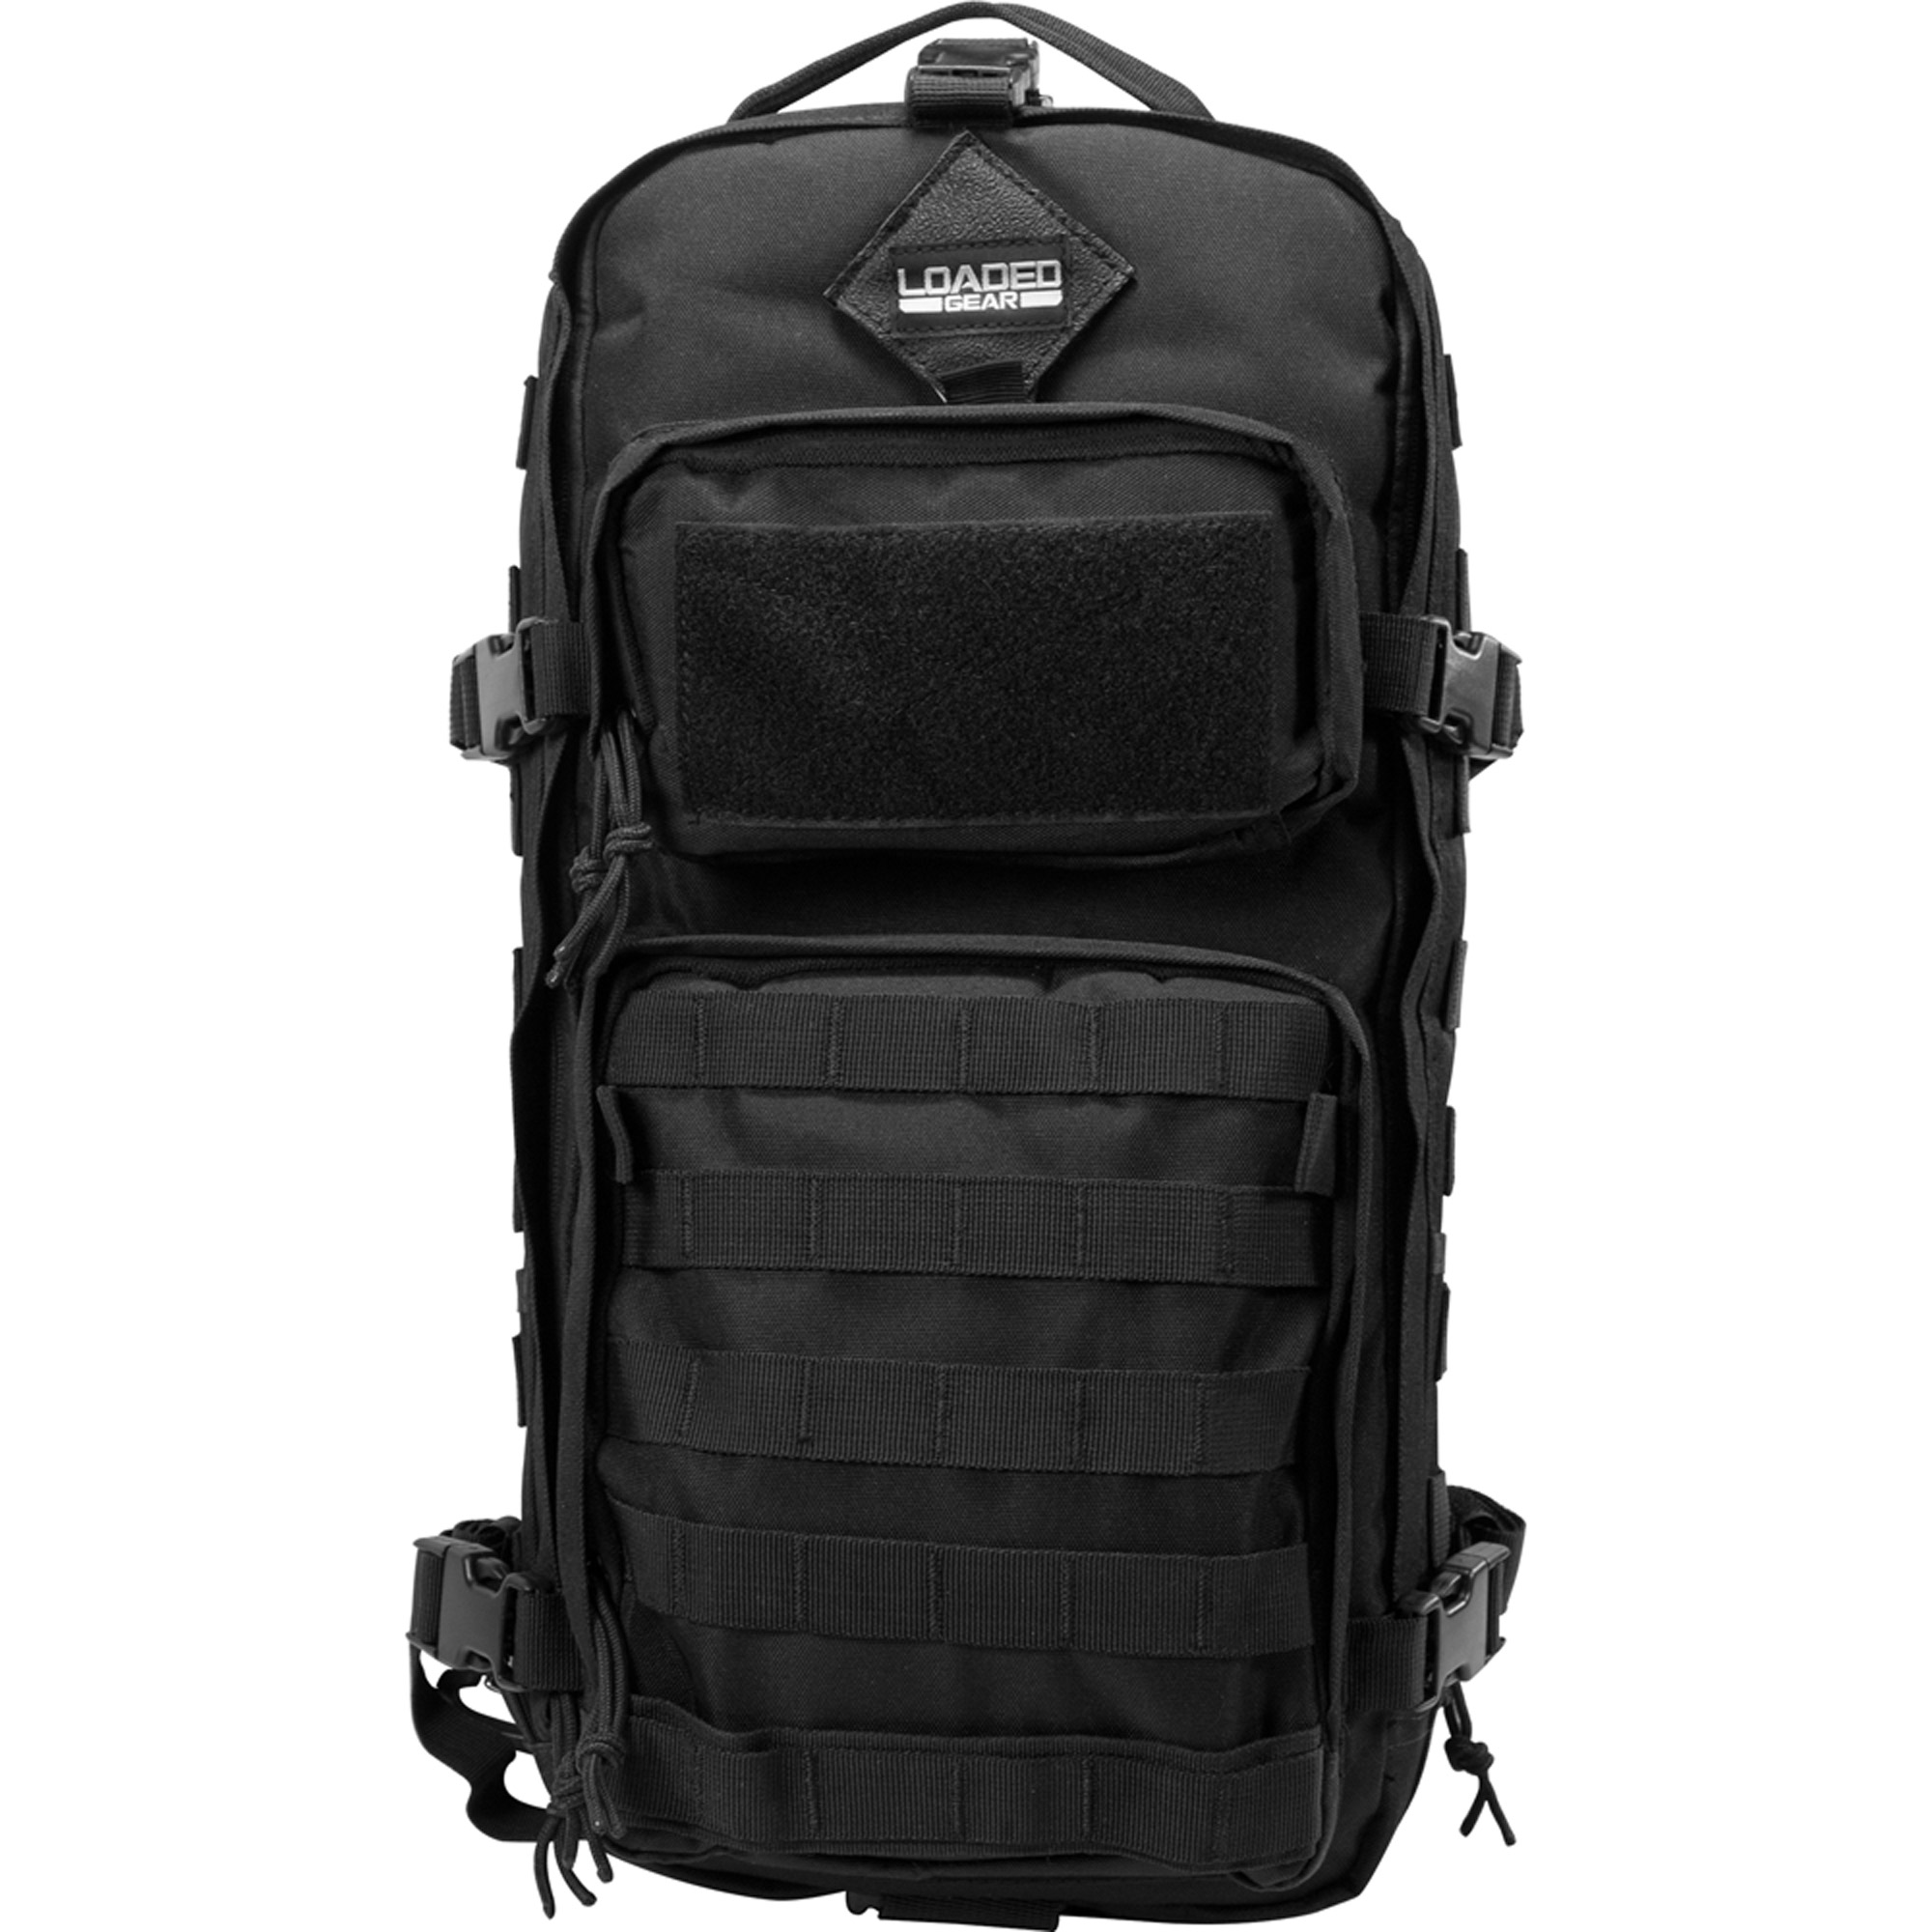 Barska Optics Loaded Gear Backpack, GX-300